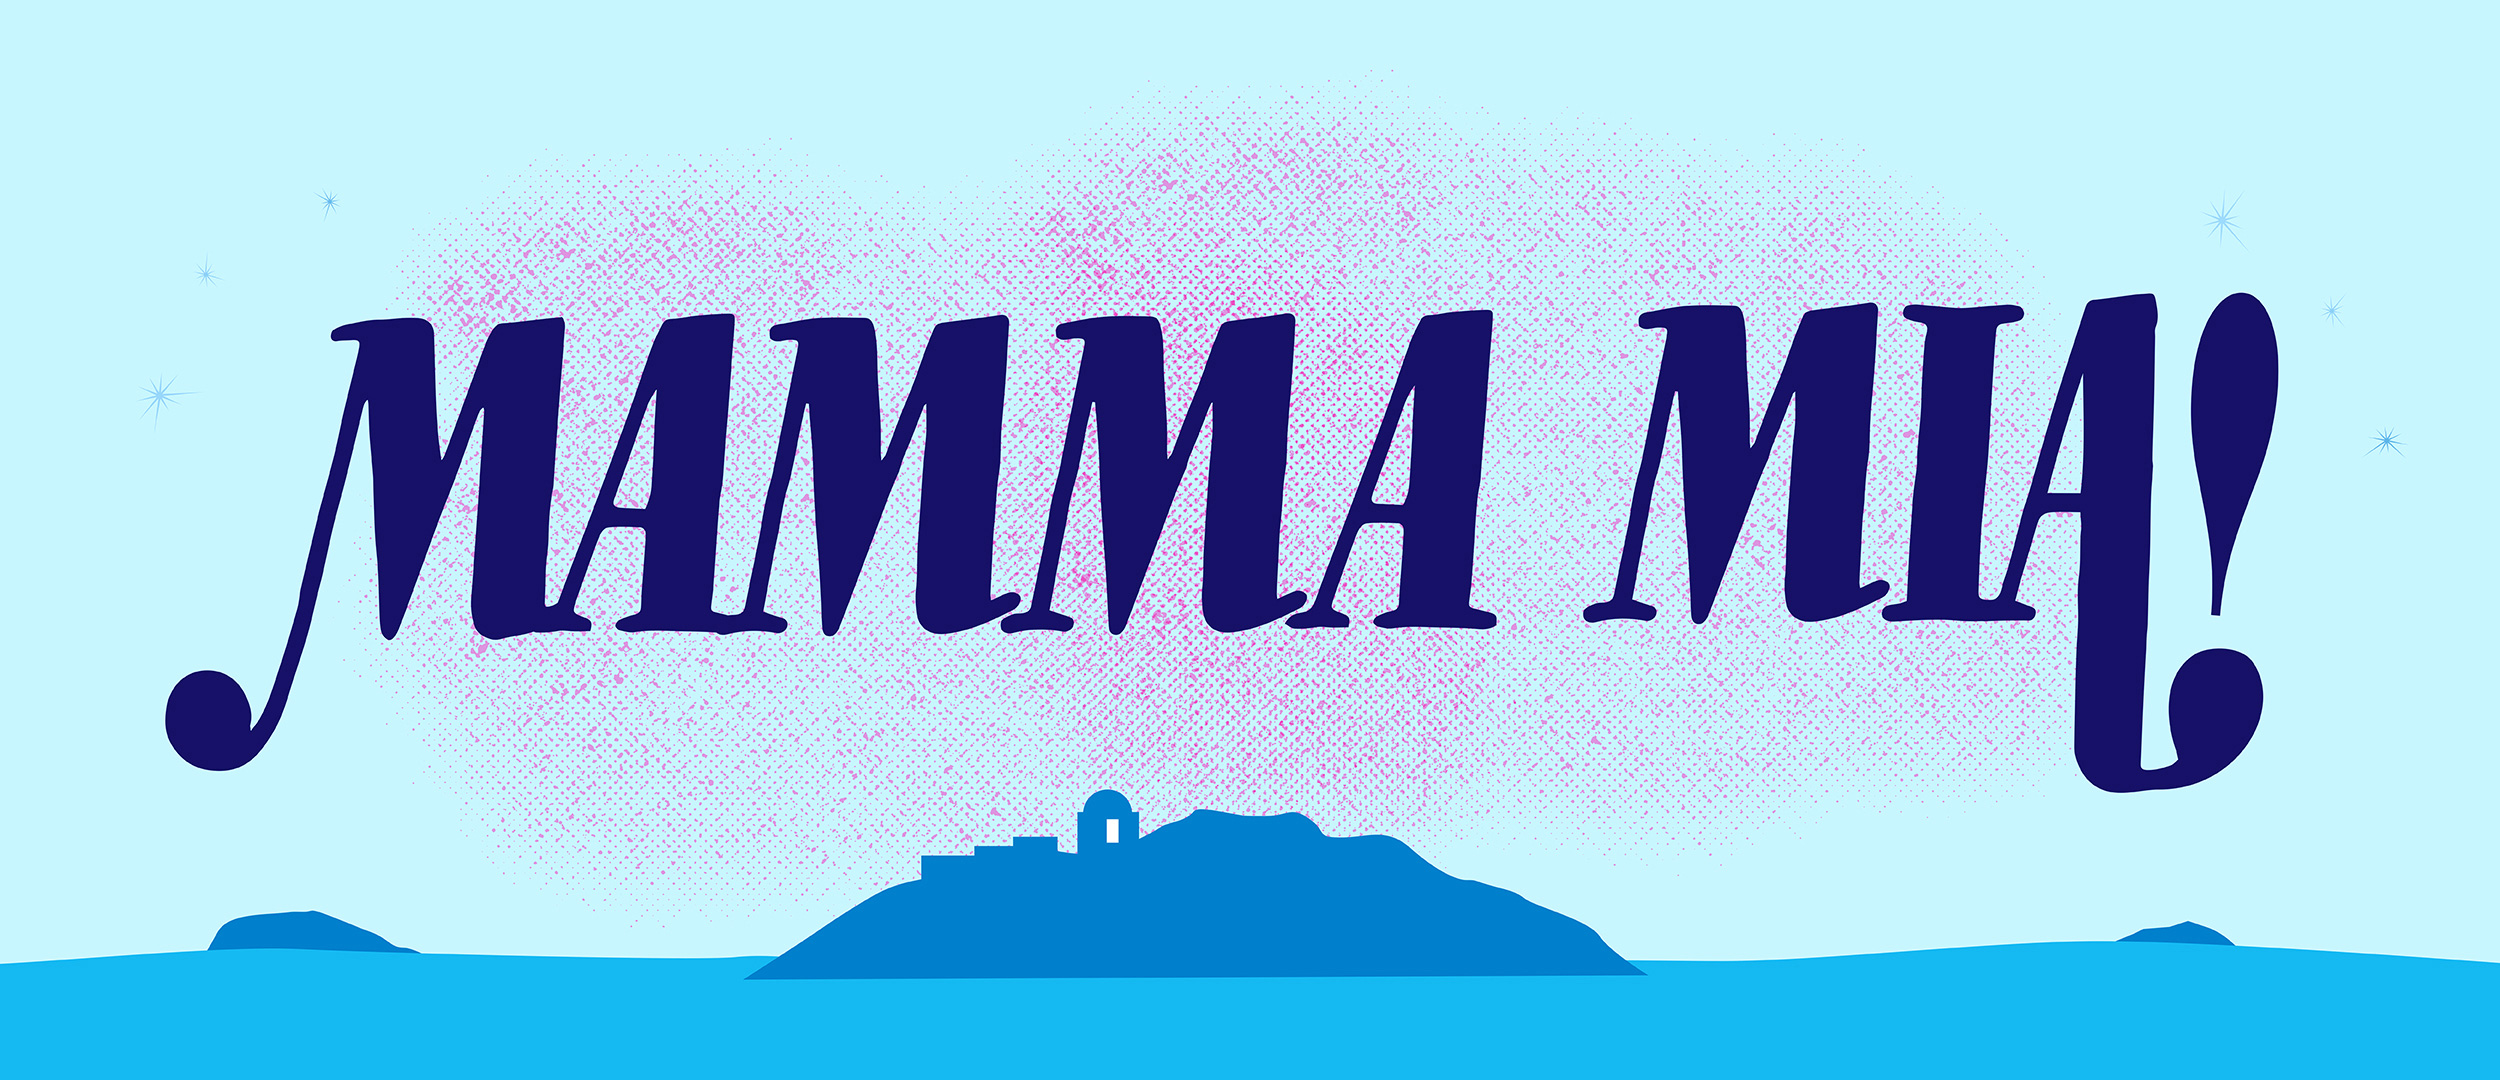 Mamma Mia Show Package Projected Backdrop for Beach/Tropical, Landscapes, Mamma Mia, Show, Theater